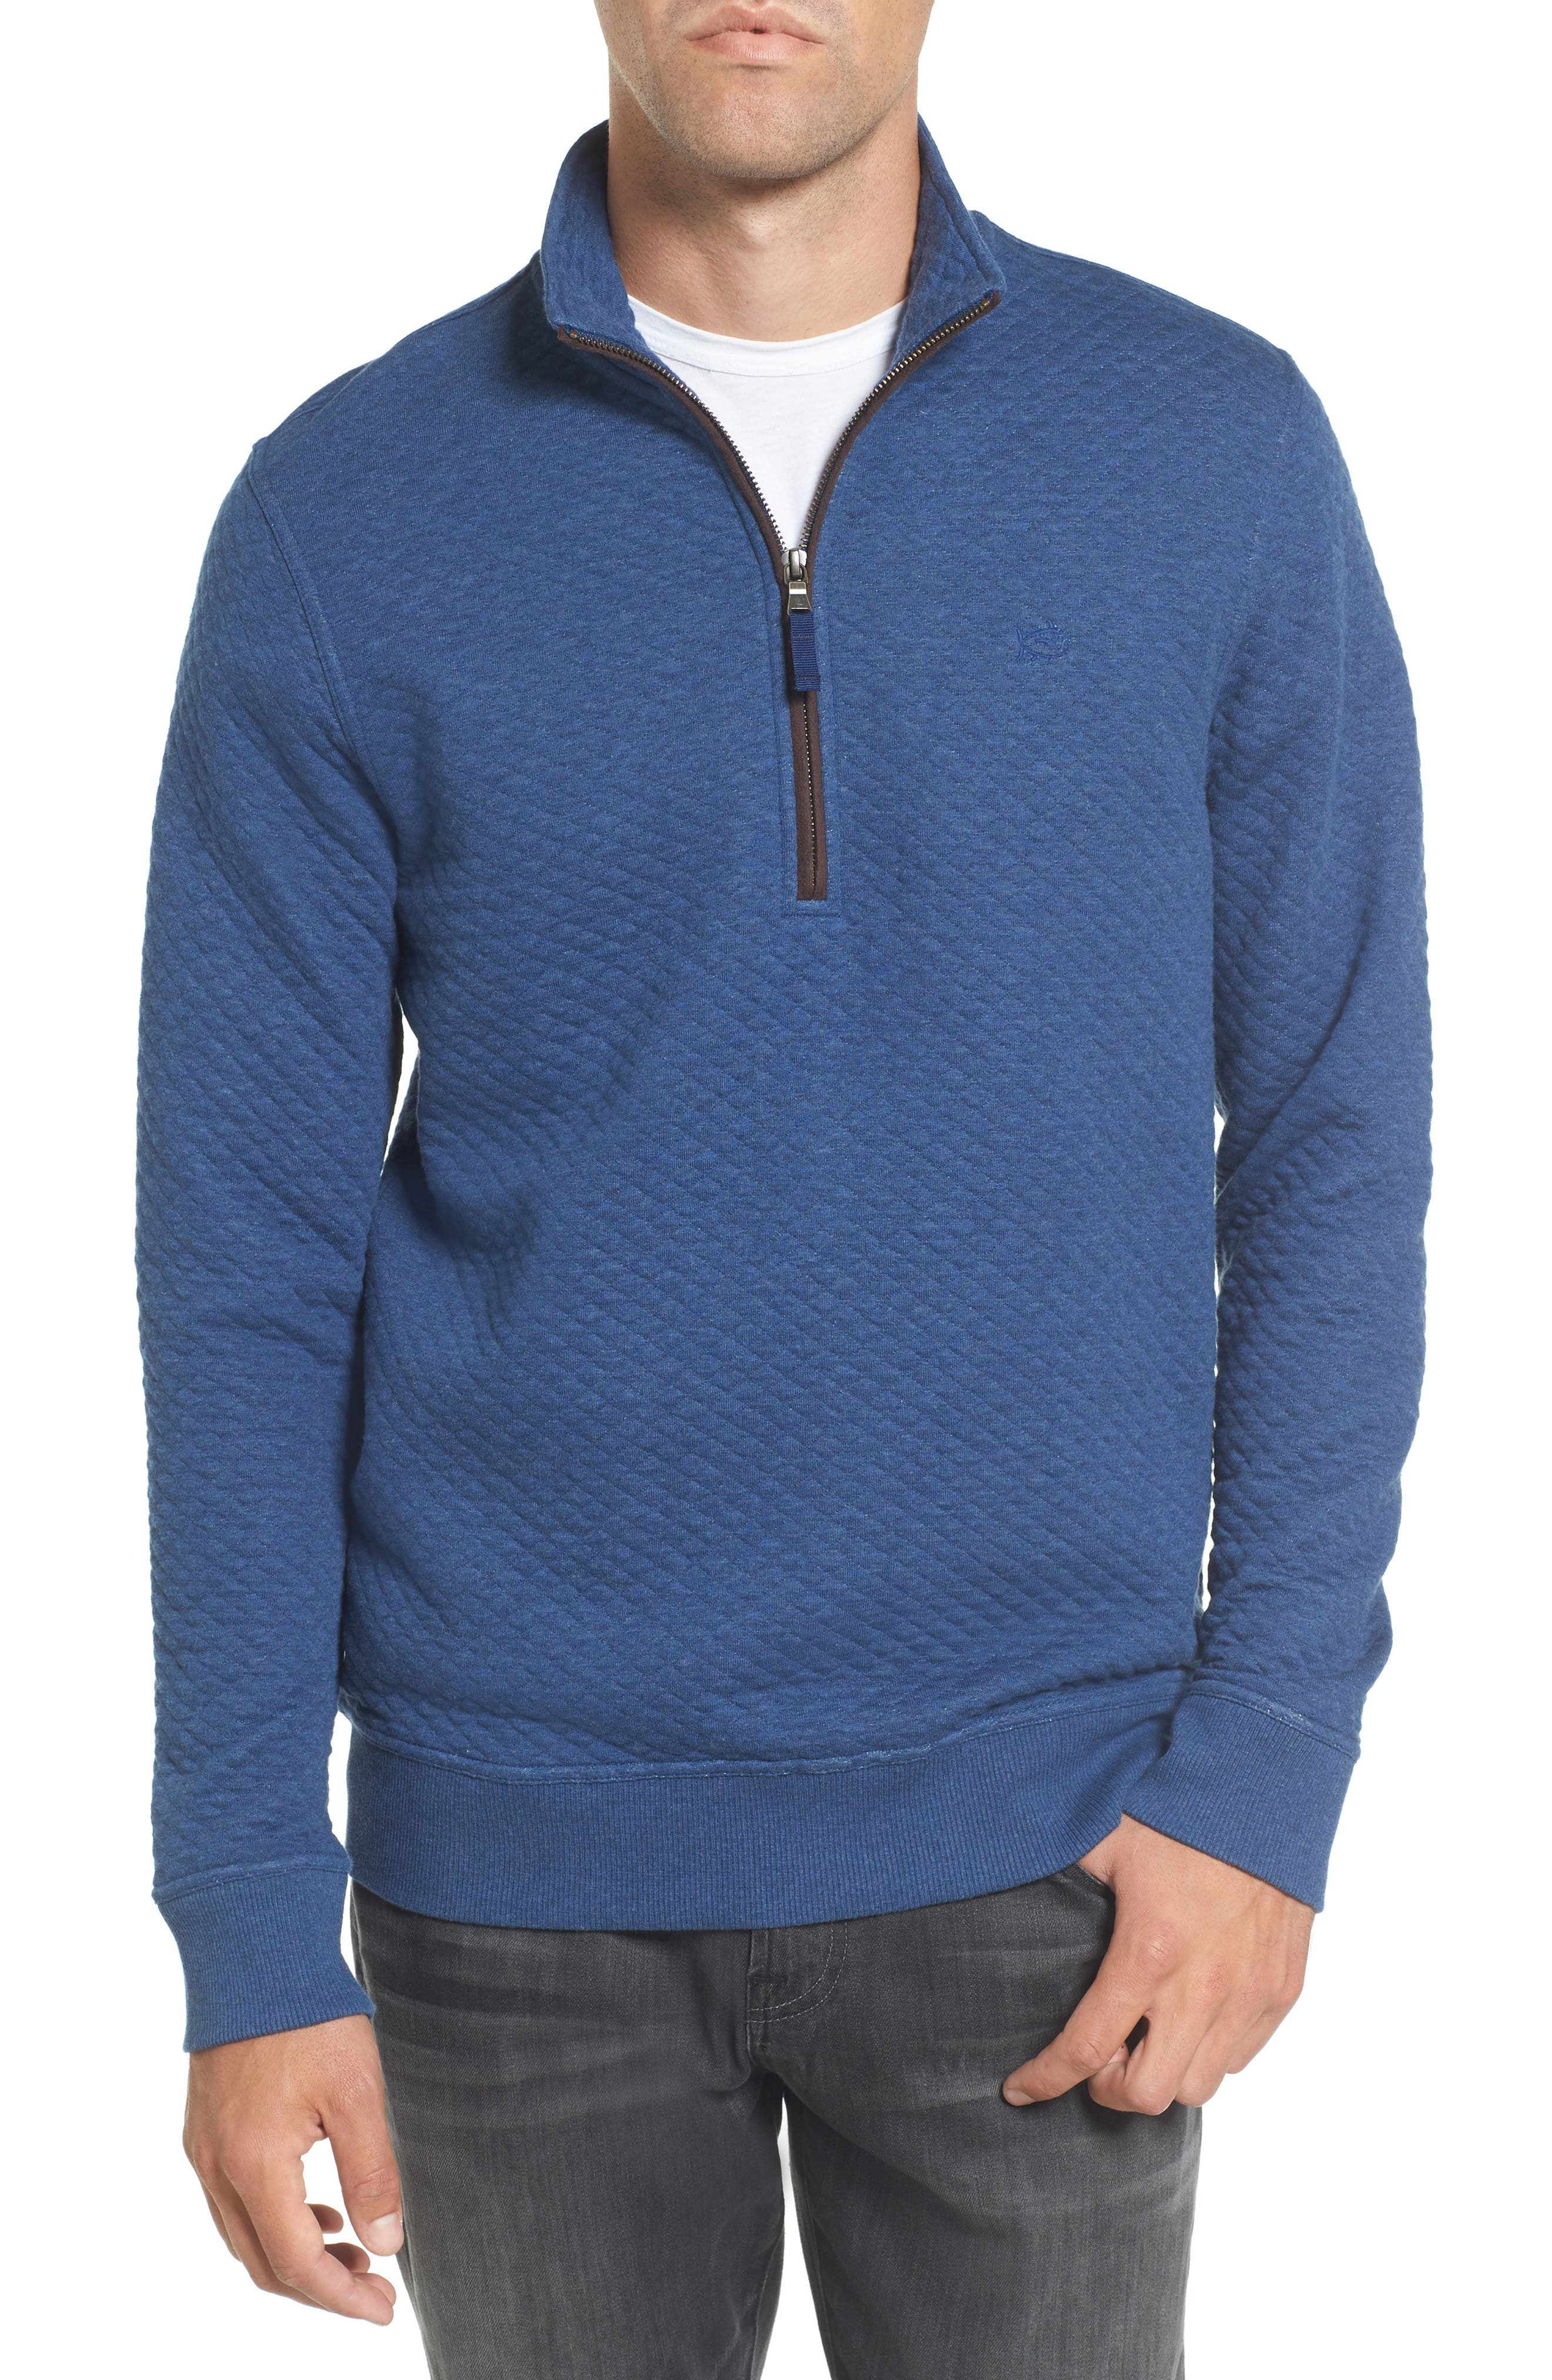 Main Image - Southern Tide Sundown Quilted Quarter Zip Pullover